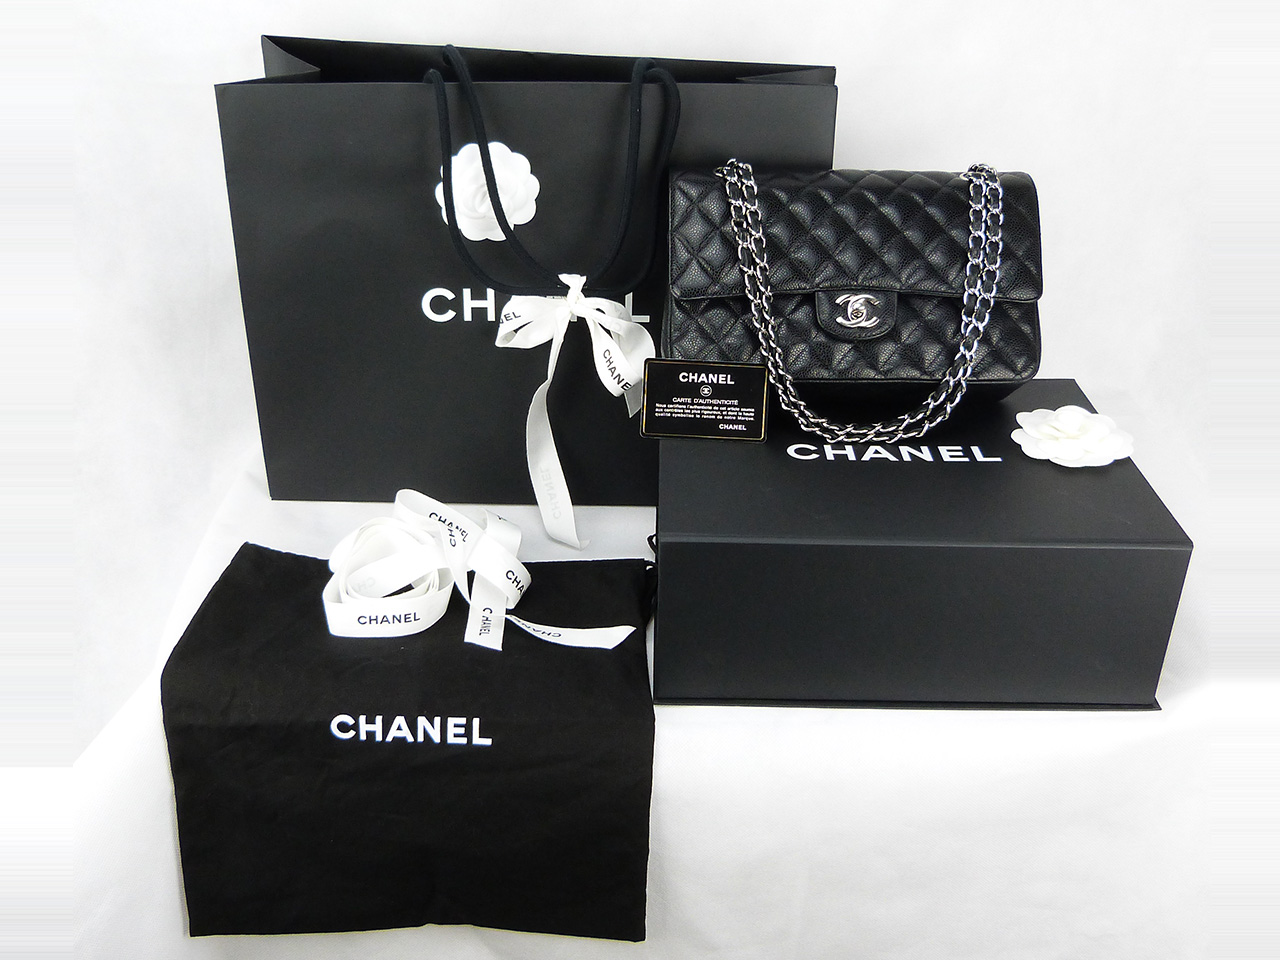 Sac à main Chanel Timeless Authentique d'occasion noir en cuir caviar